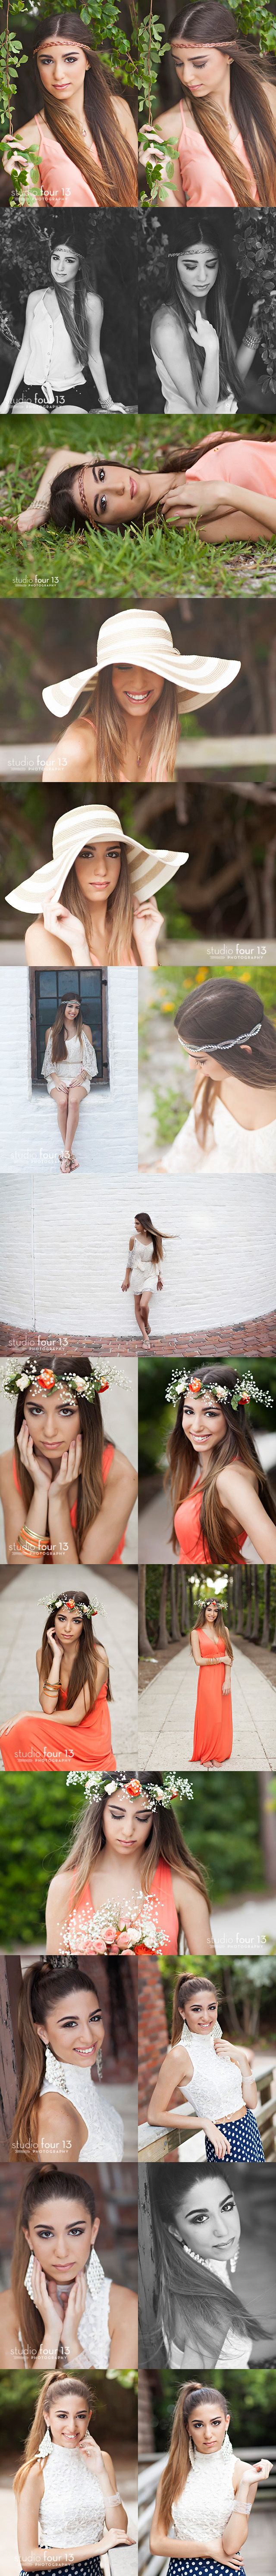 Studio four 13|Senior Photography Inspiration